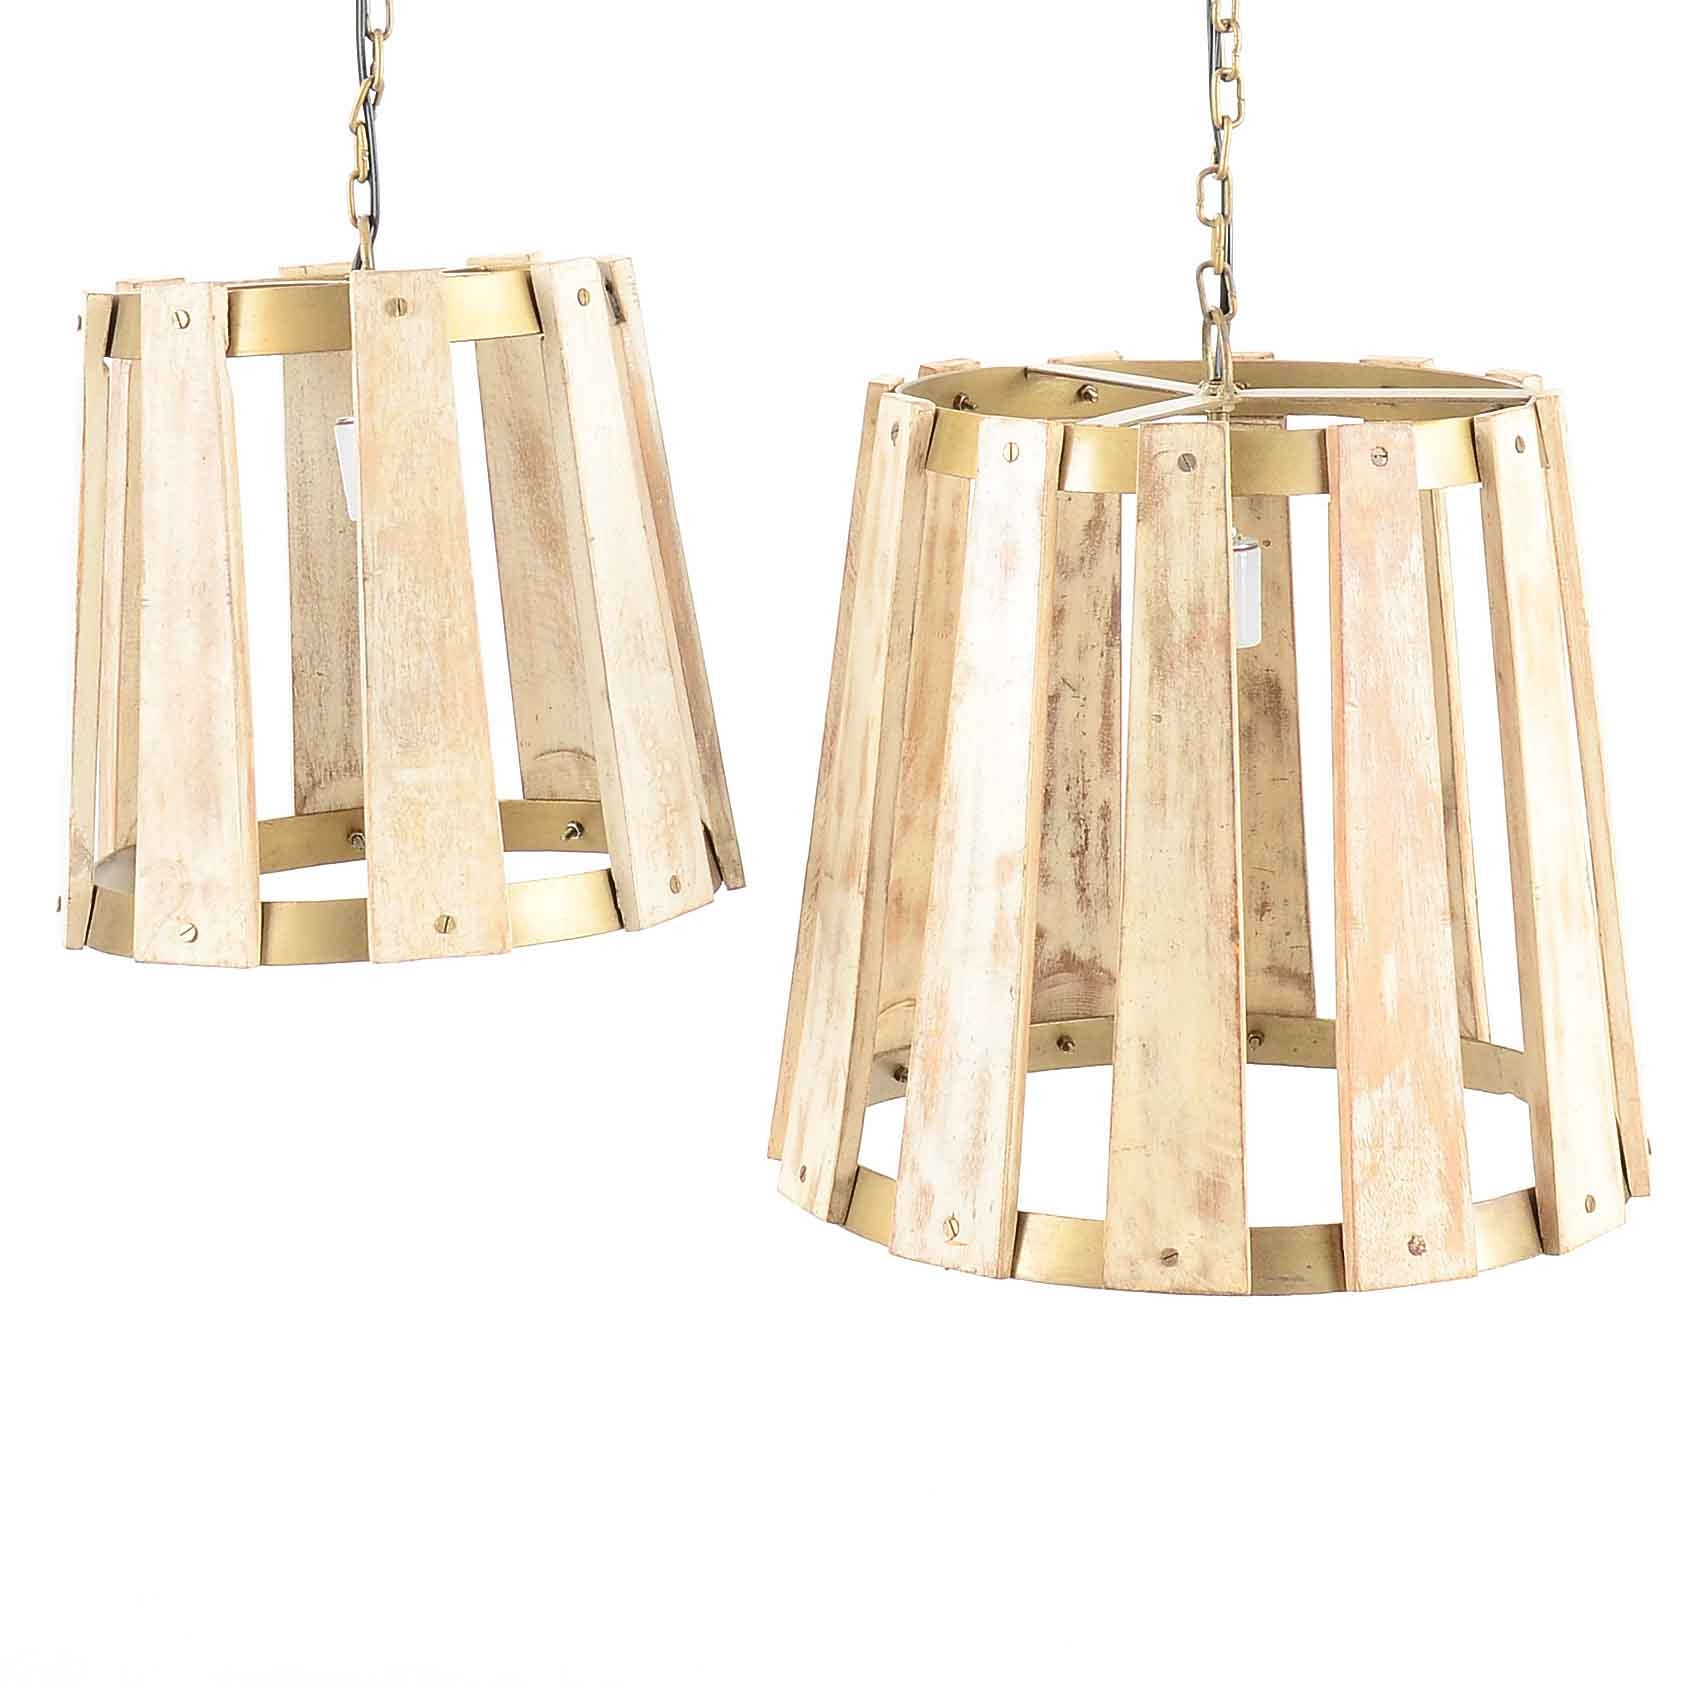 Pair of Wood and Metal Pendant Lights